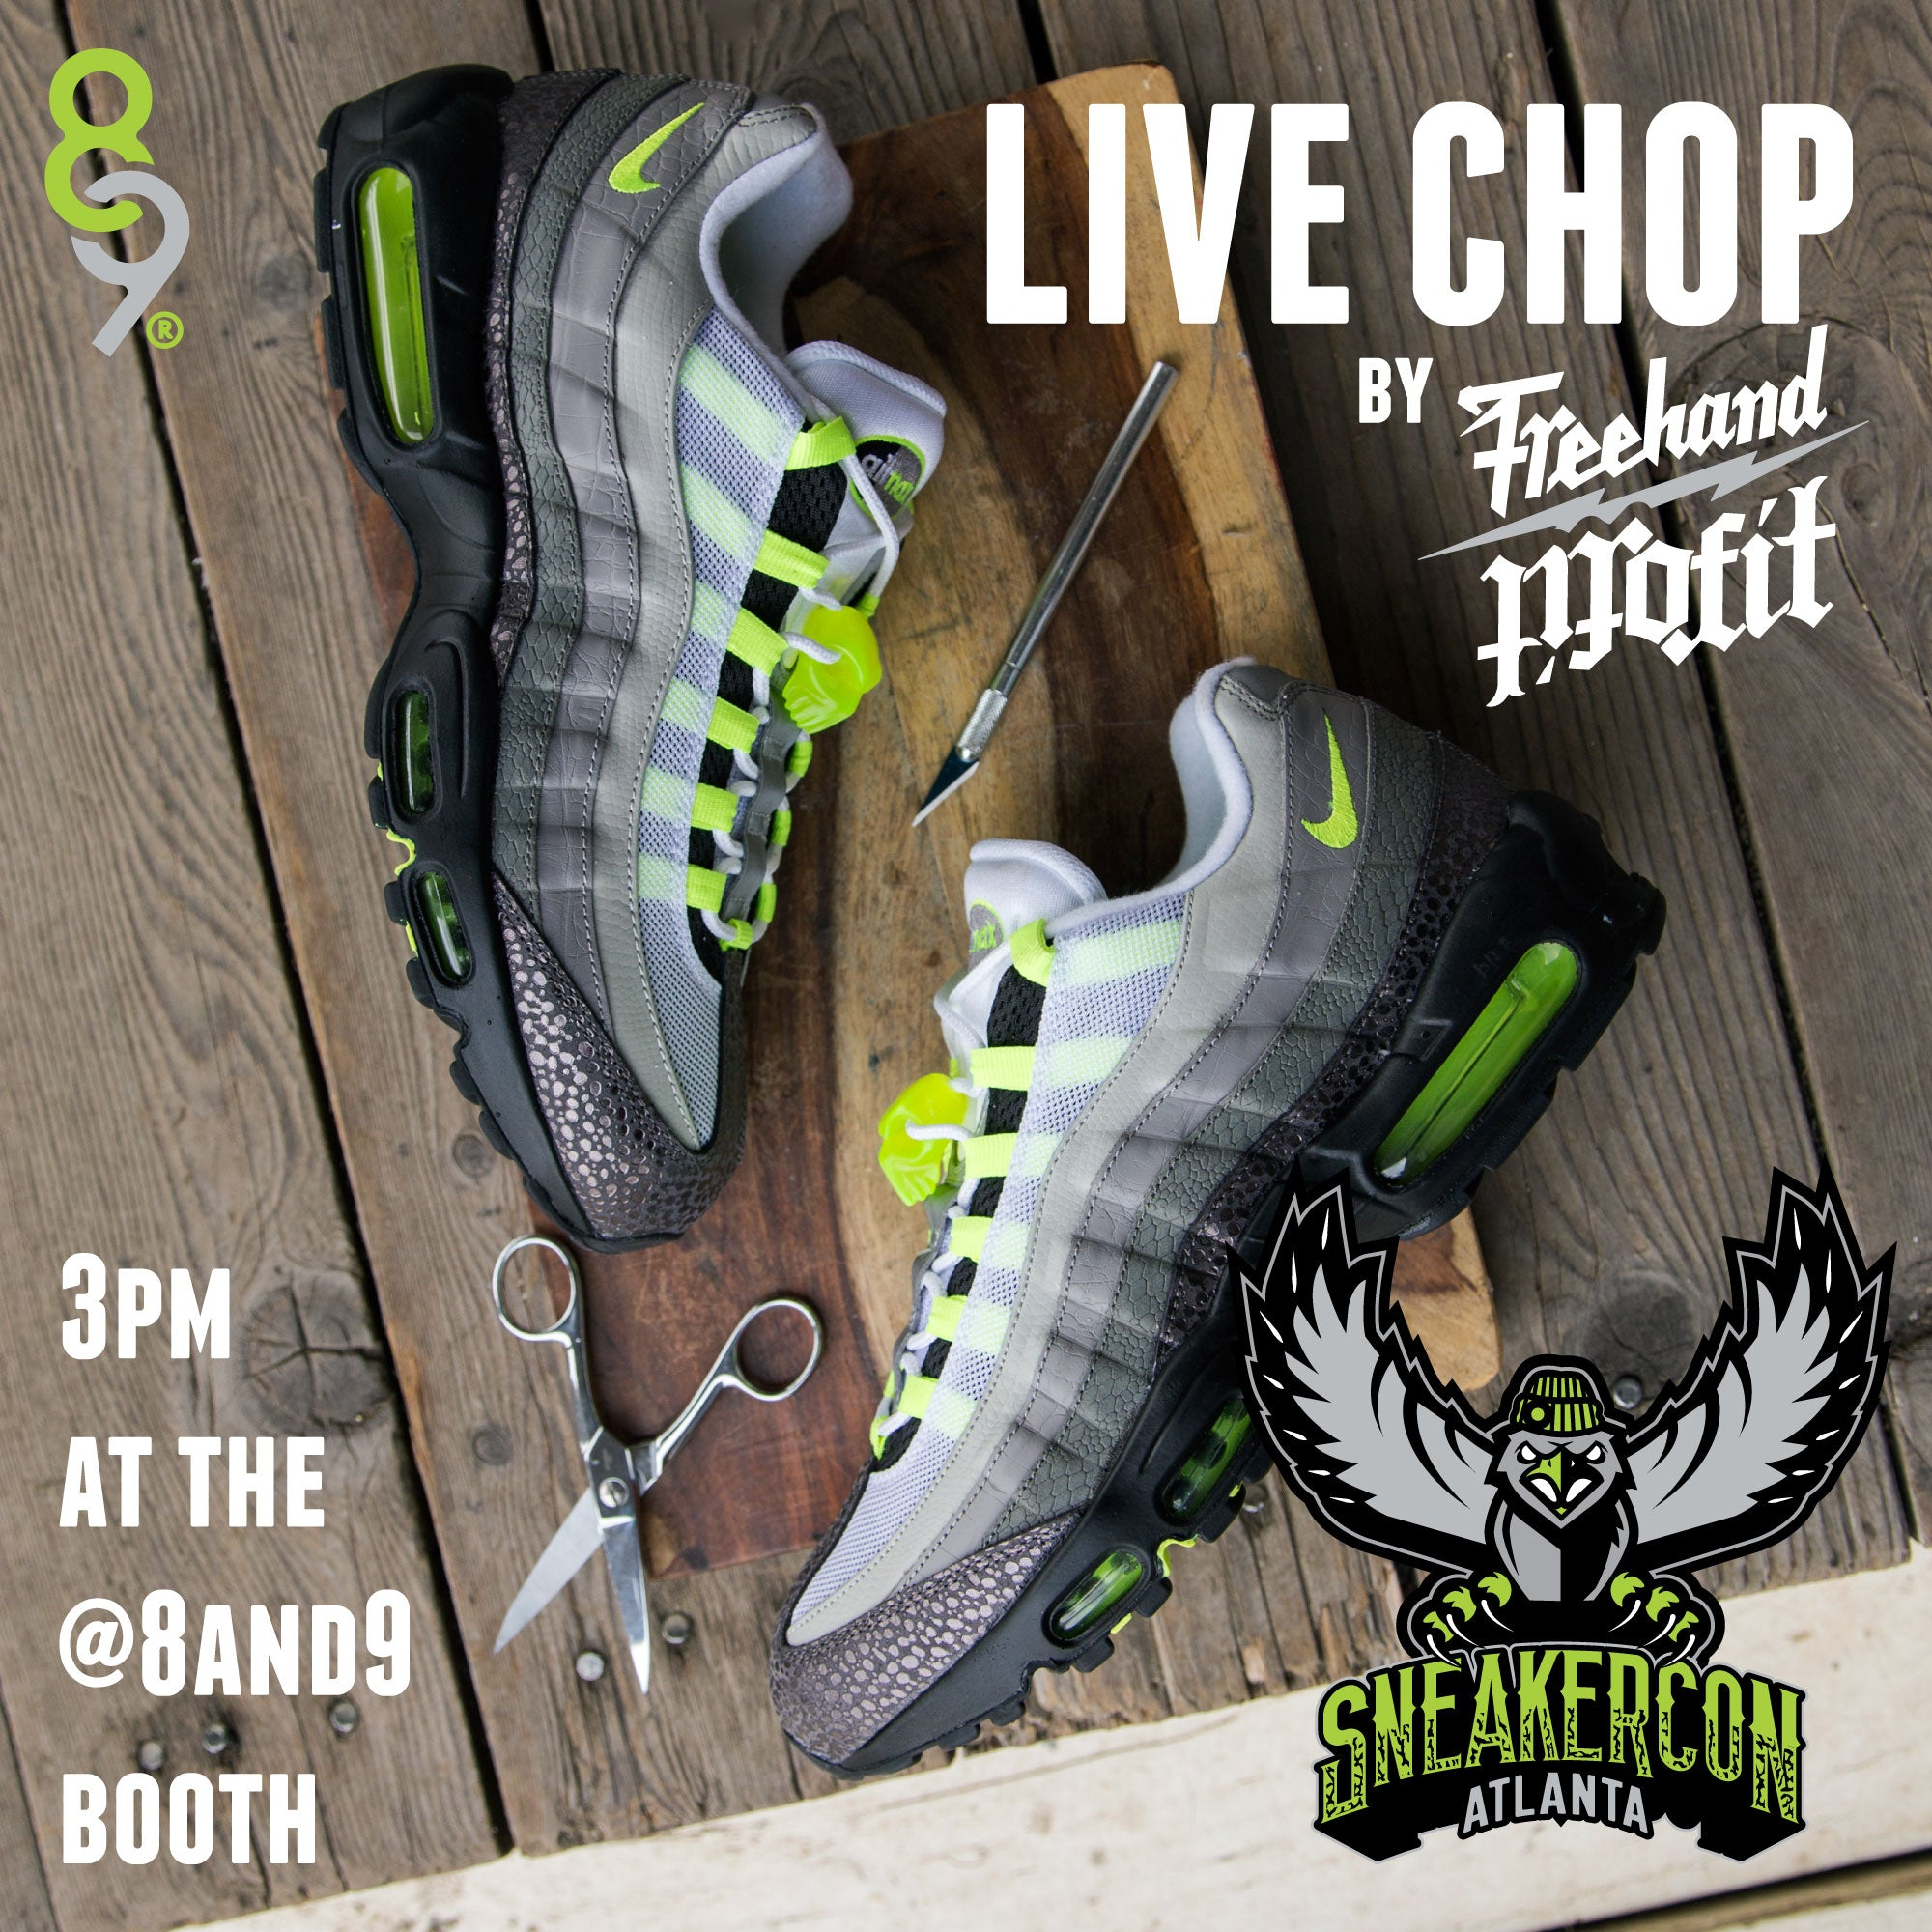 sneaker con freehand profit live chop 8and9 atlanta 2015